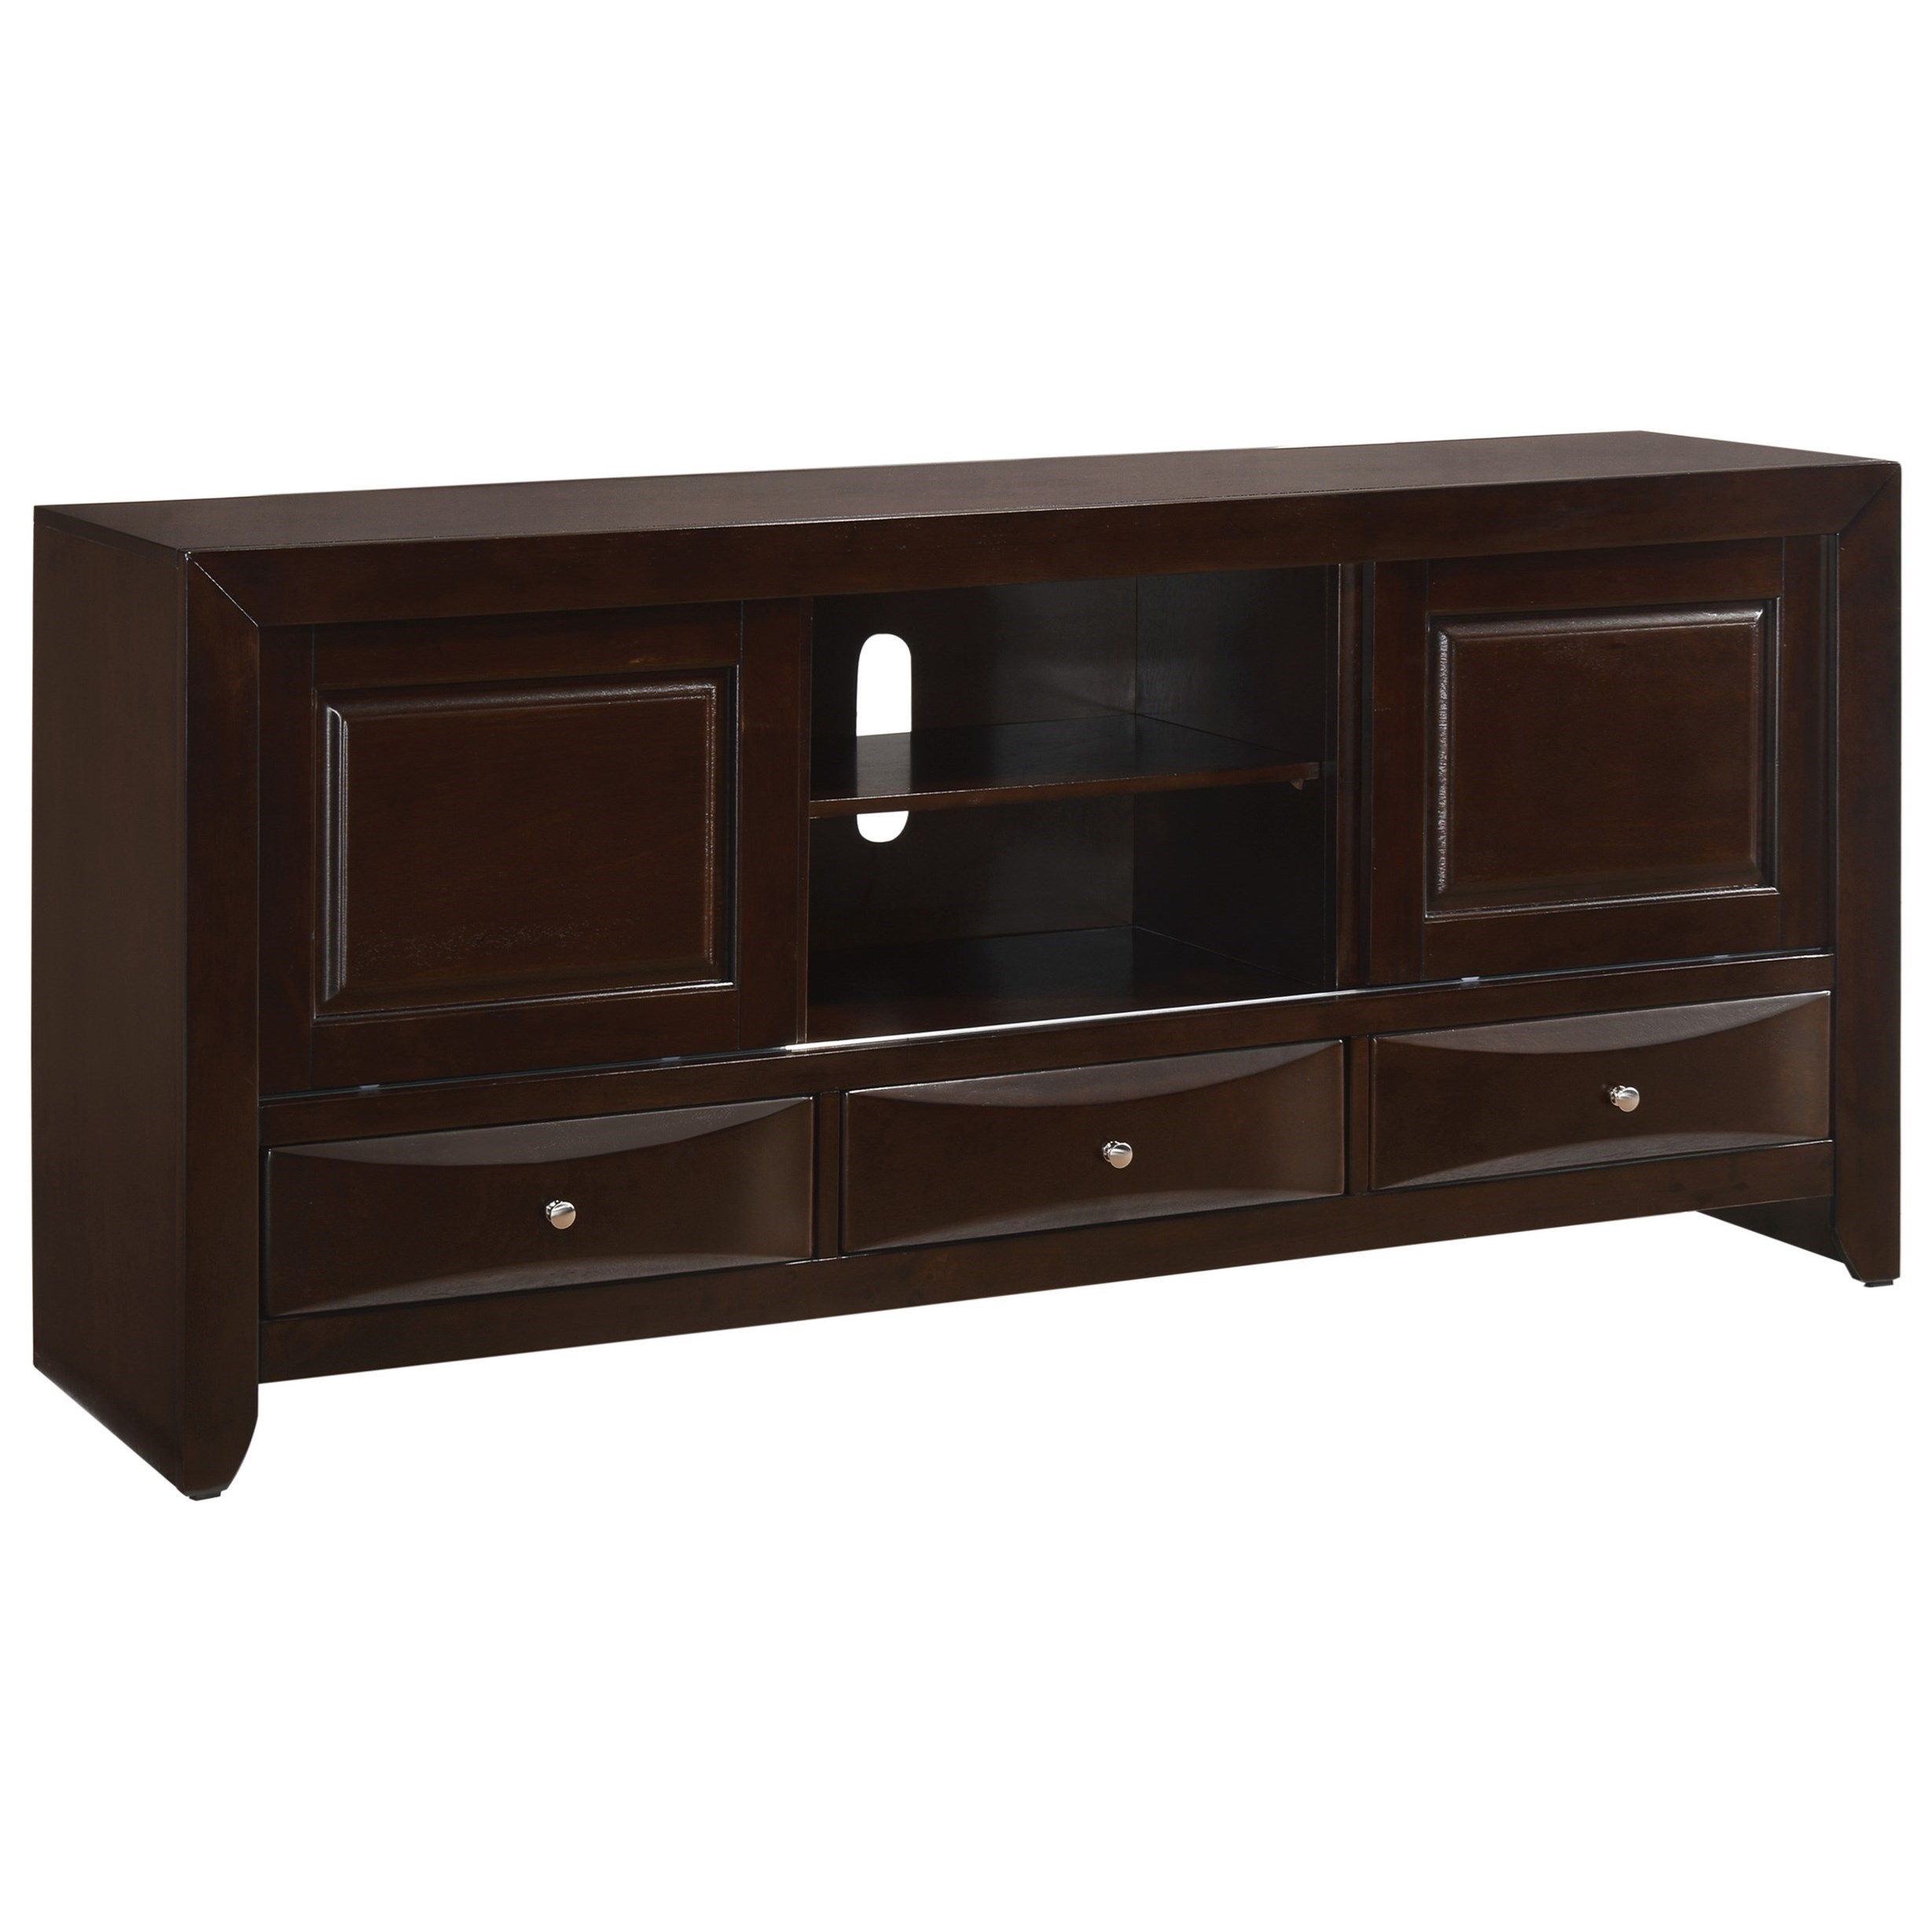 Emily TV Stand by Crown Mark at Furniture Fair - North Carolina